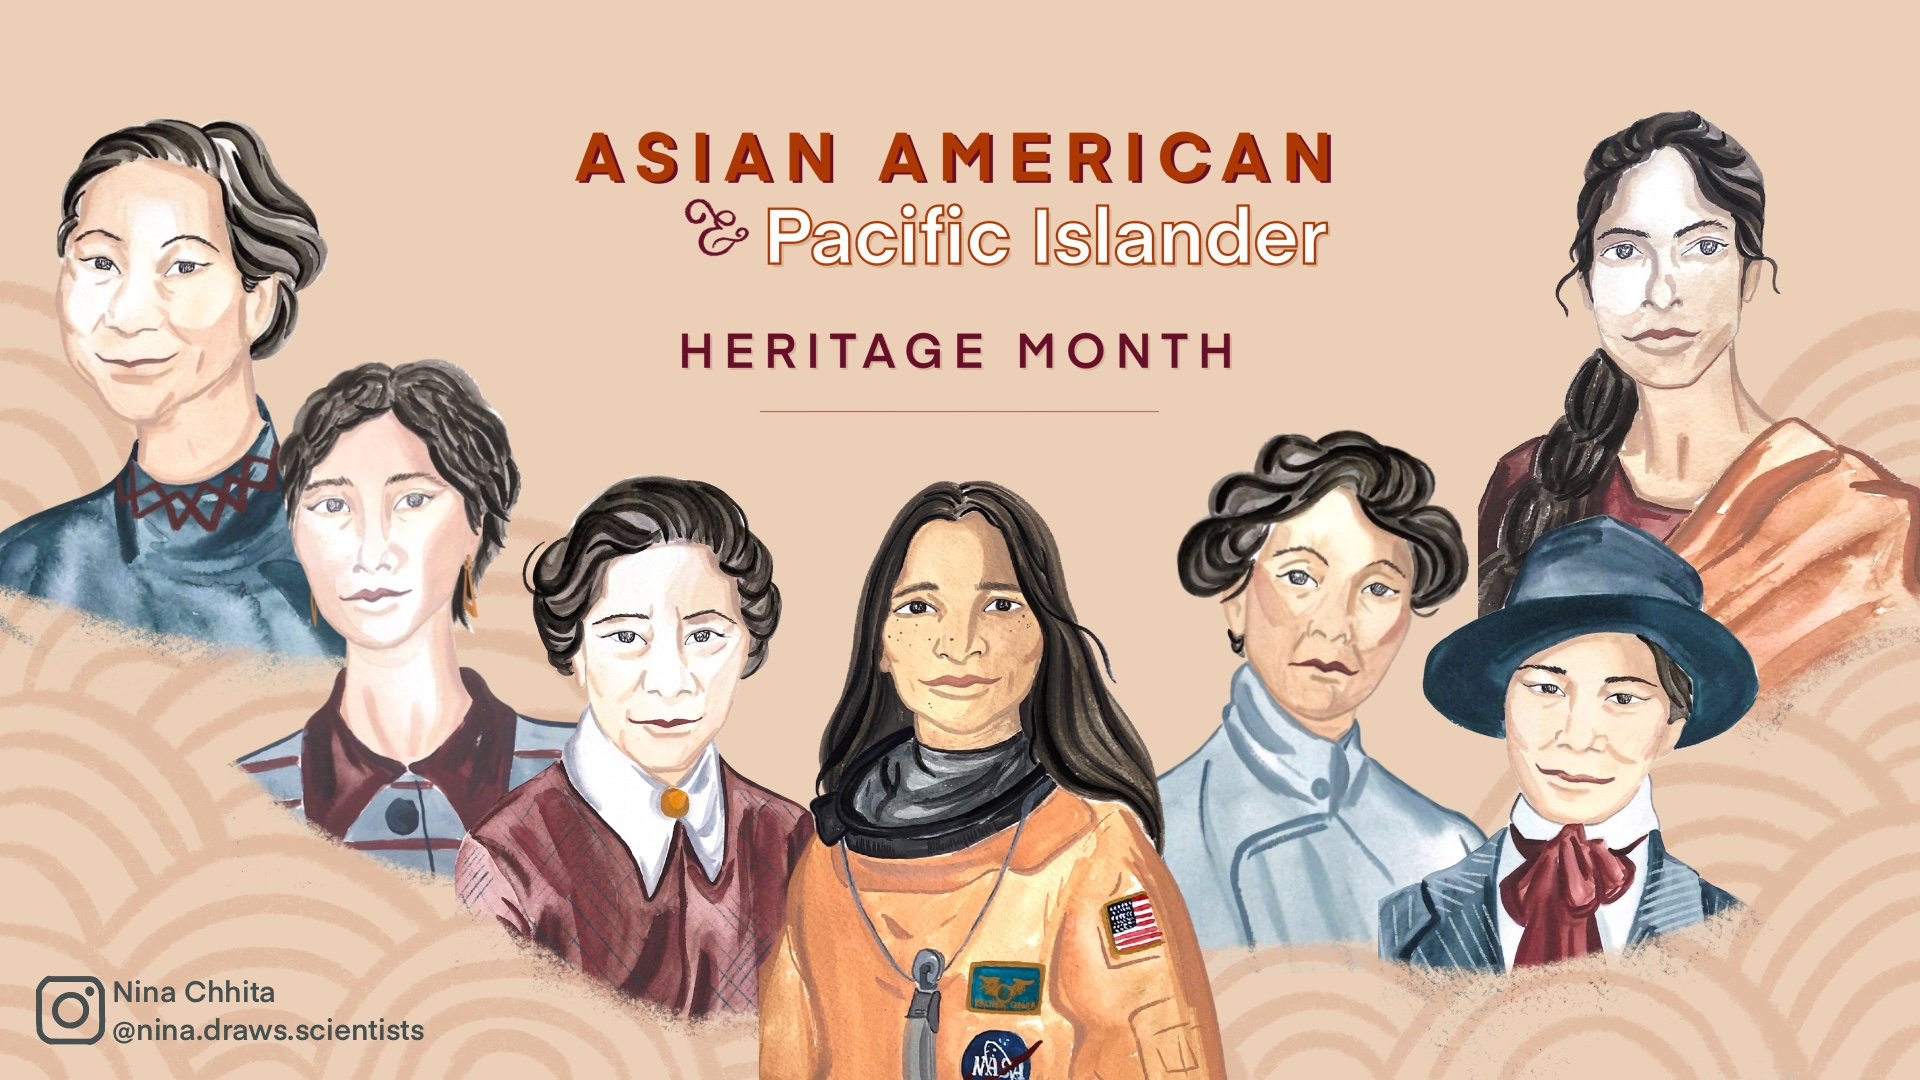 illustration of Asian and Pacific Islander scientists